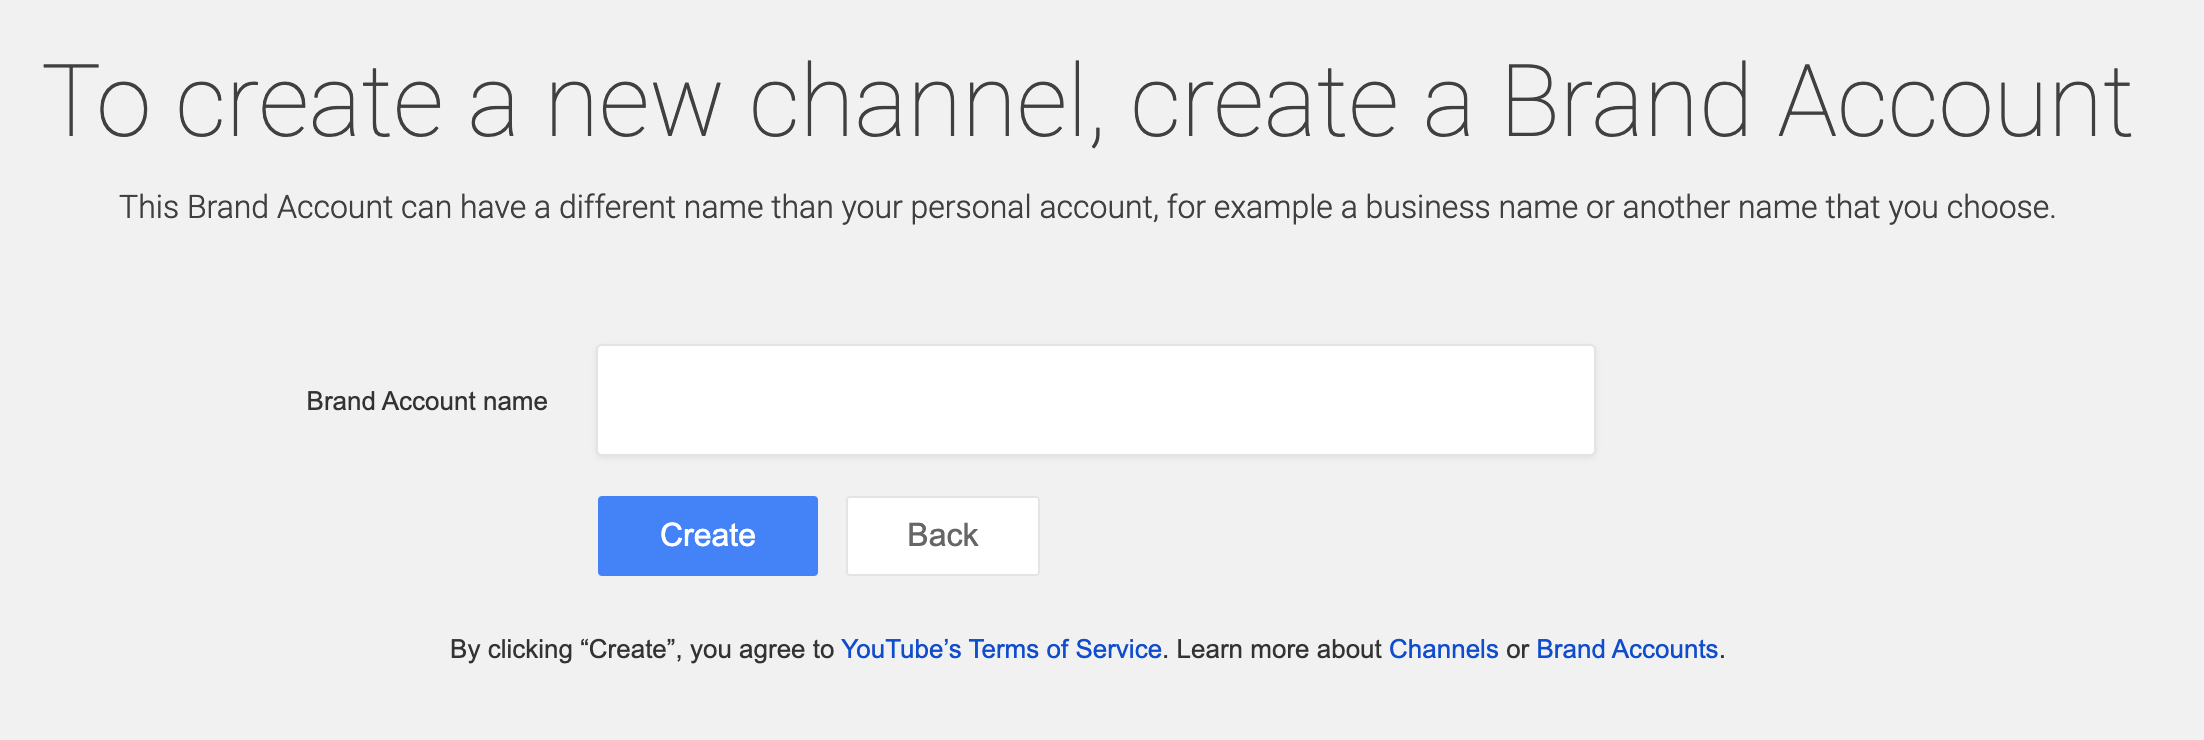 Create a new YouTube channel, create a Brand Account